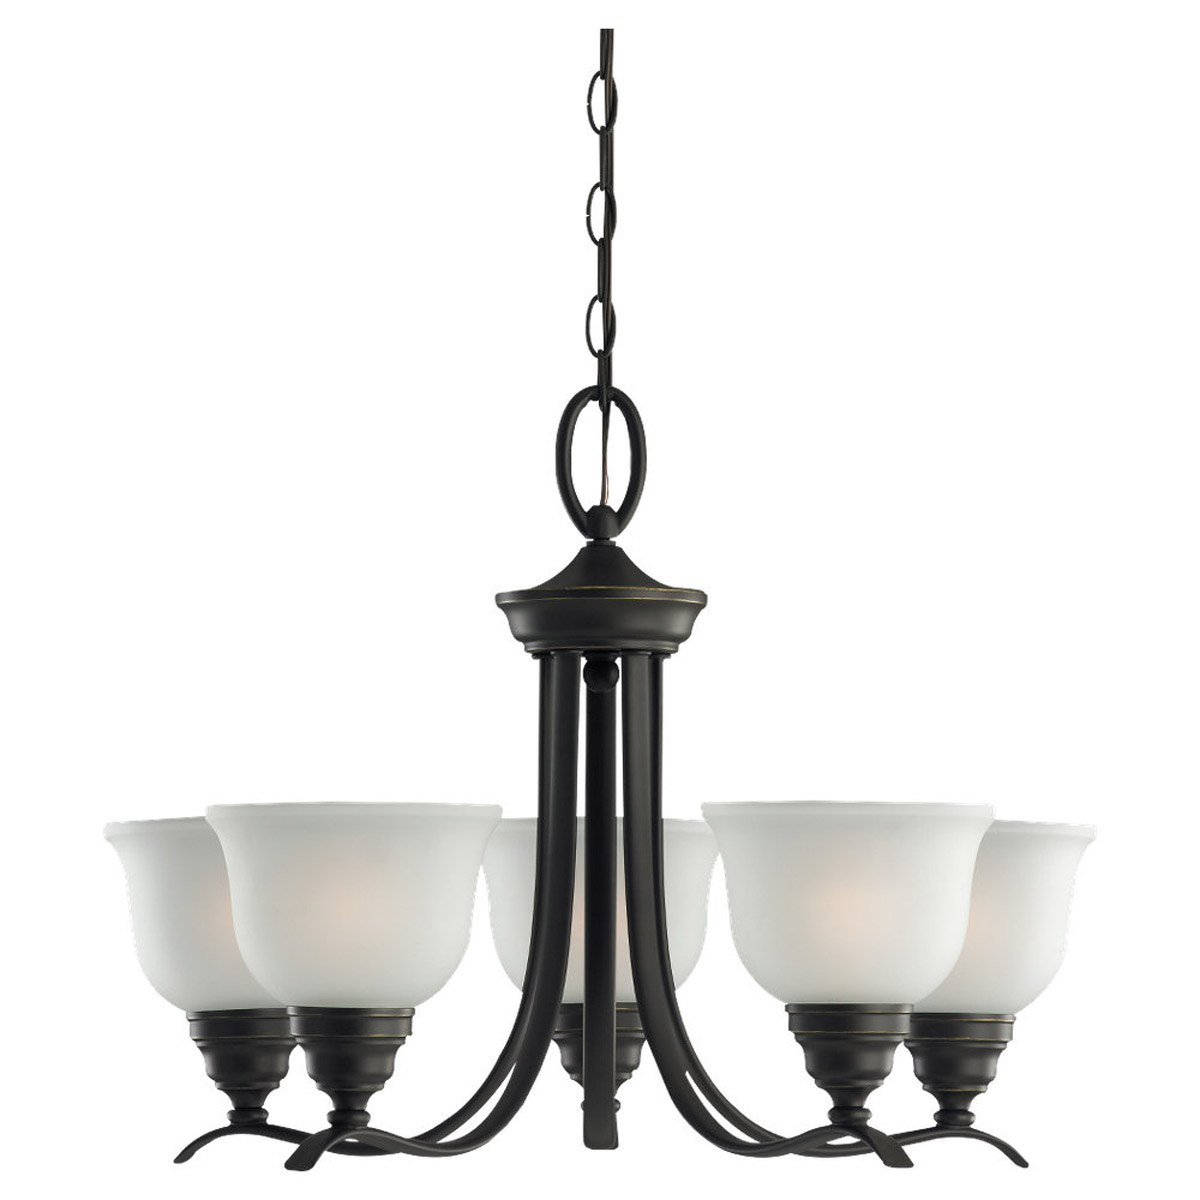 Sea Gull Lighting Wheaton 5 Light Chandelier in Heirloom Bronze 31626BLE-782 photo